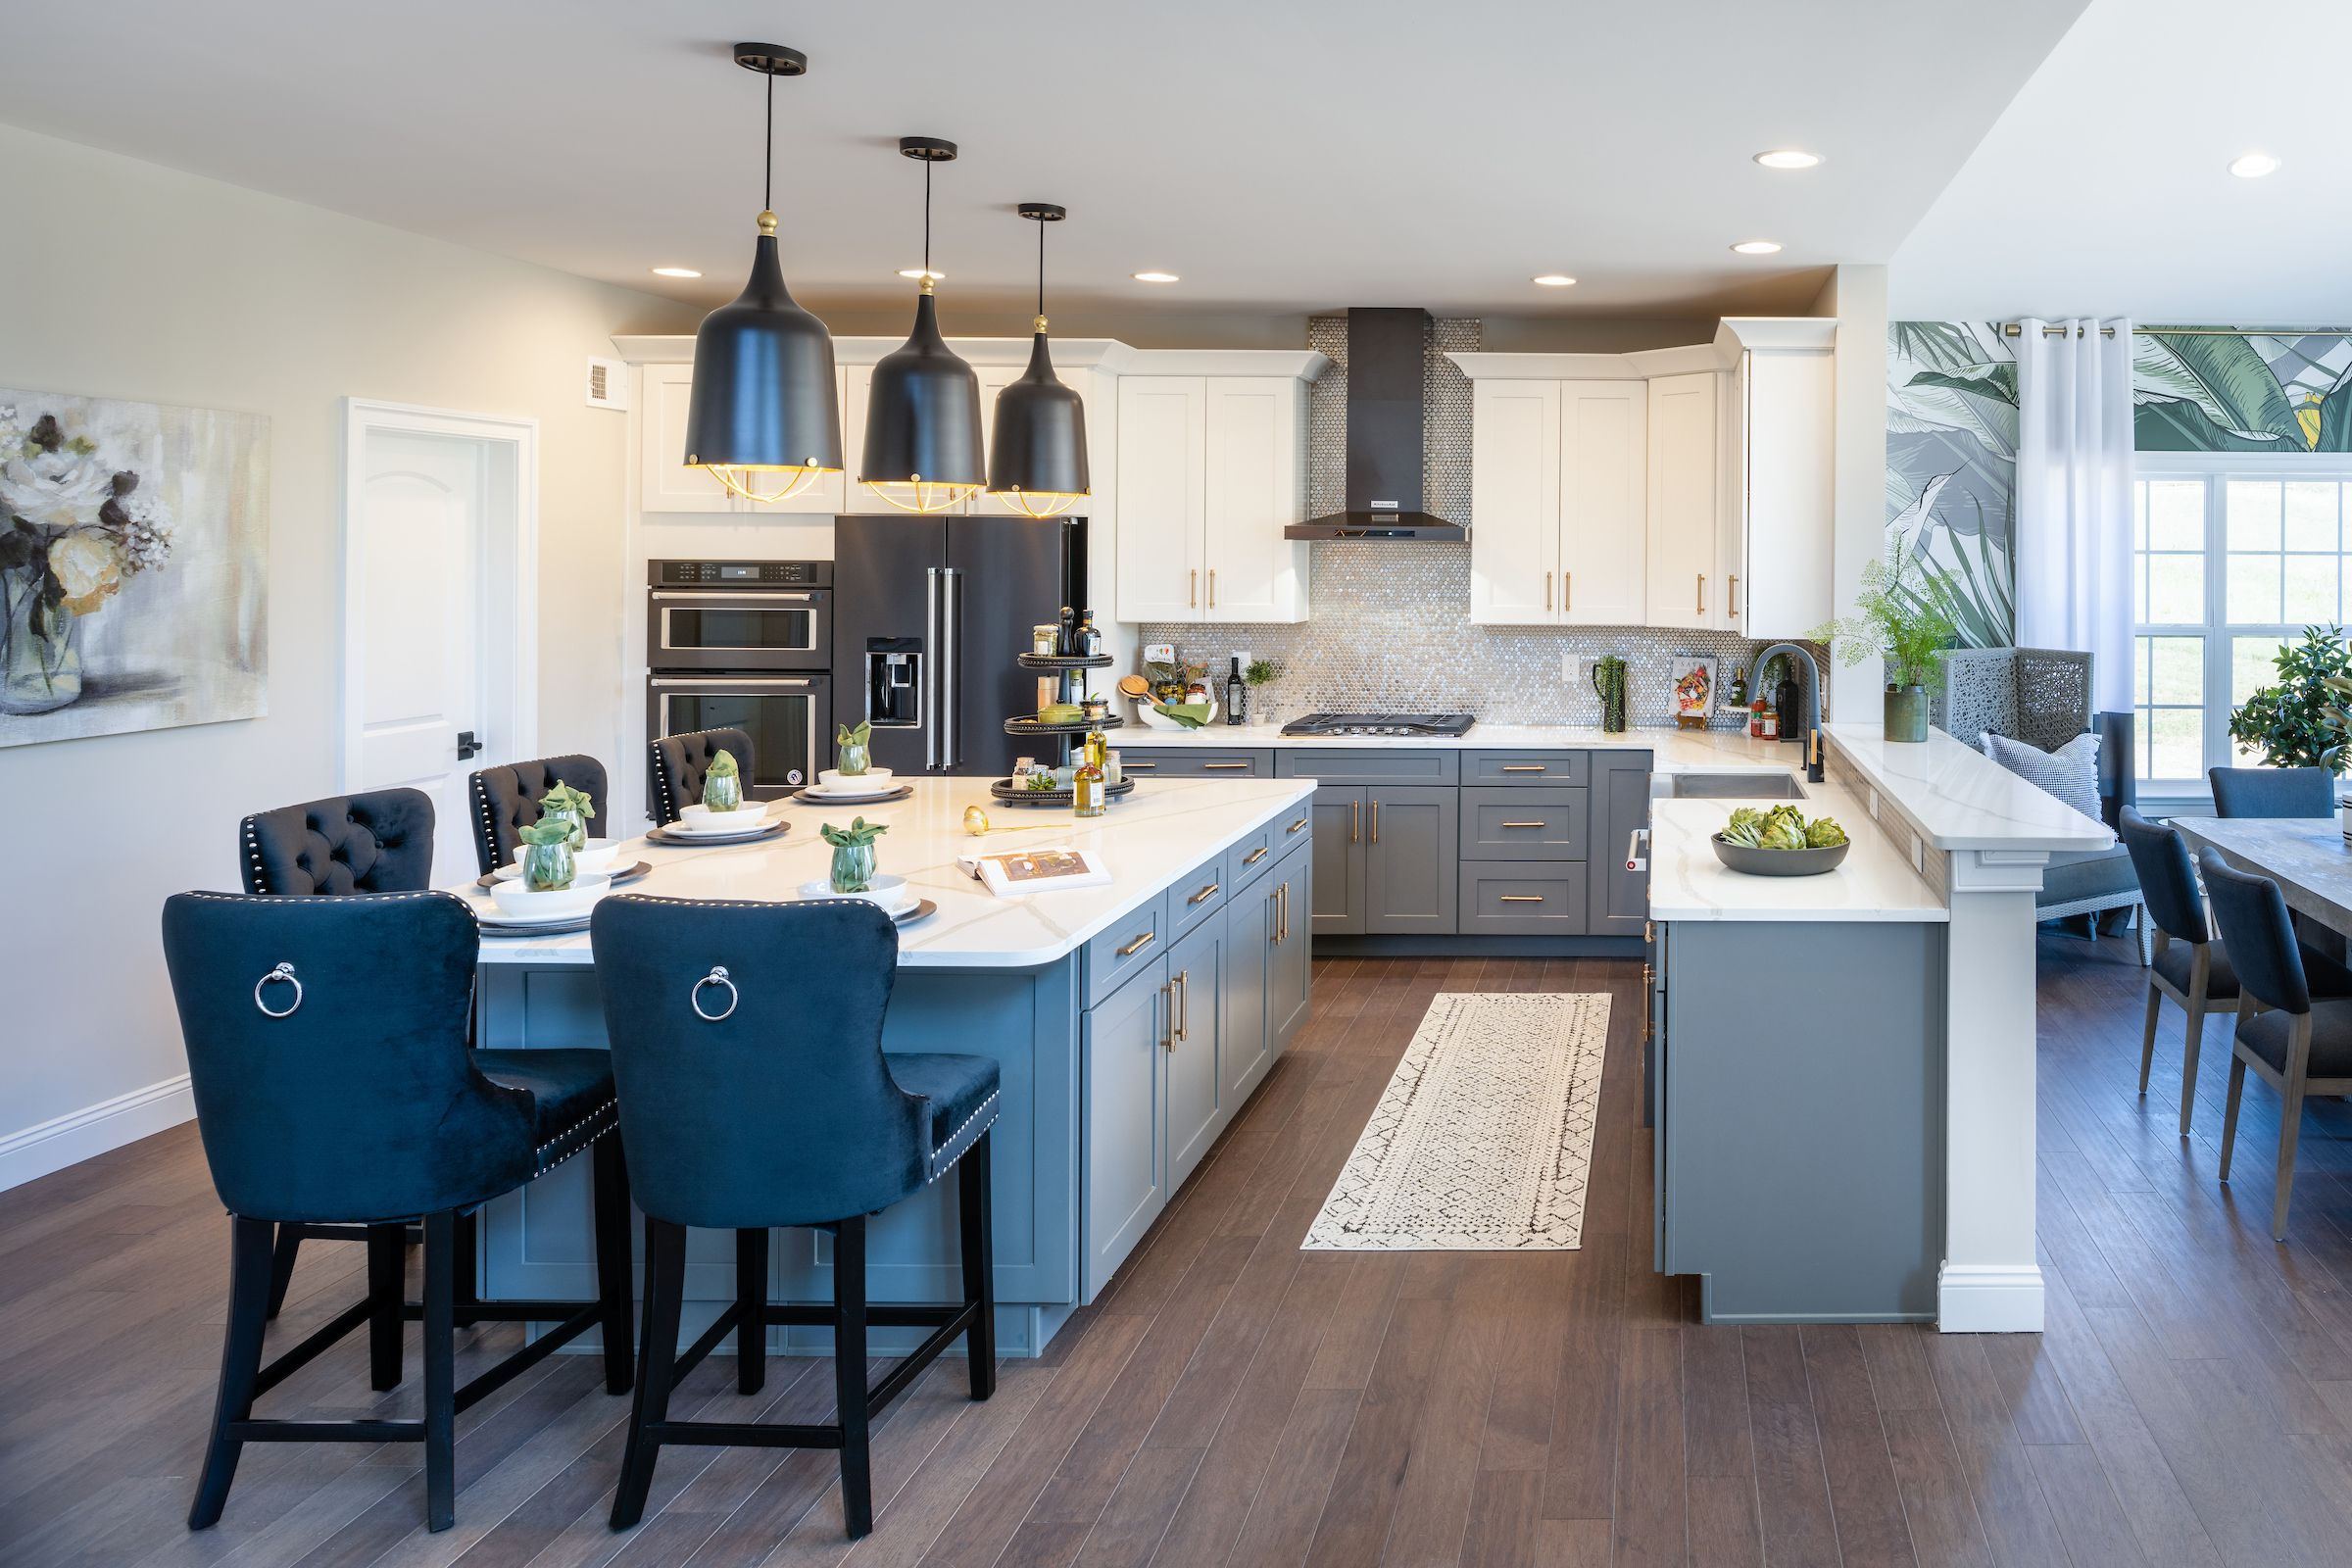 Kitchen featured in the Hawthorne Vintage By Keystone Custom Homes in Baltimore, MD